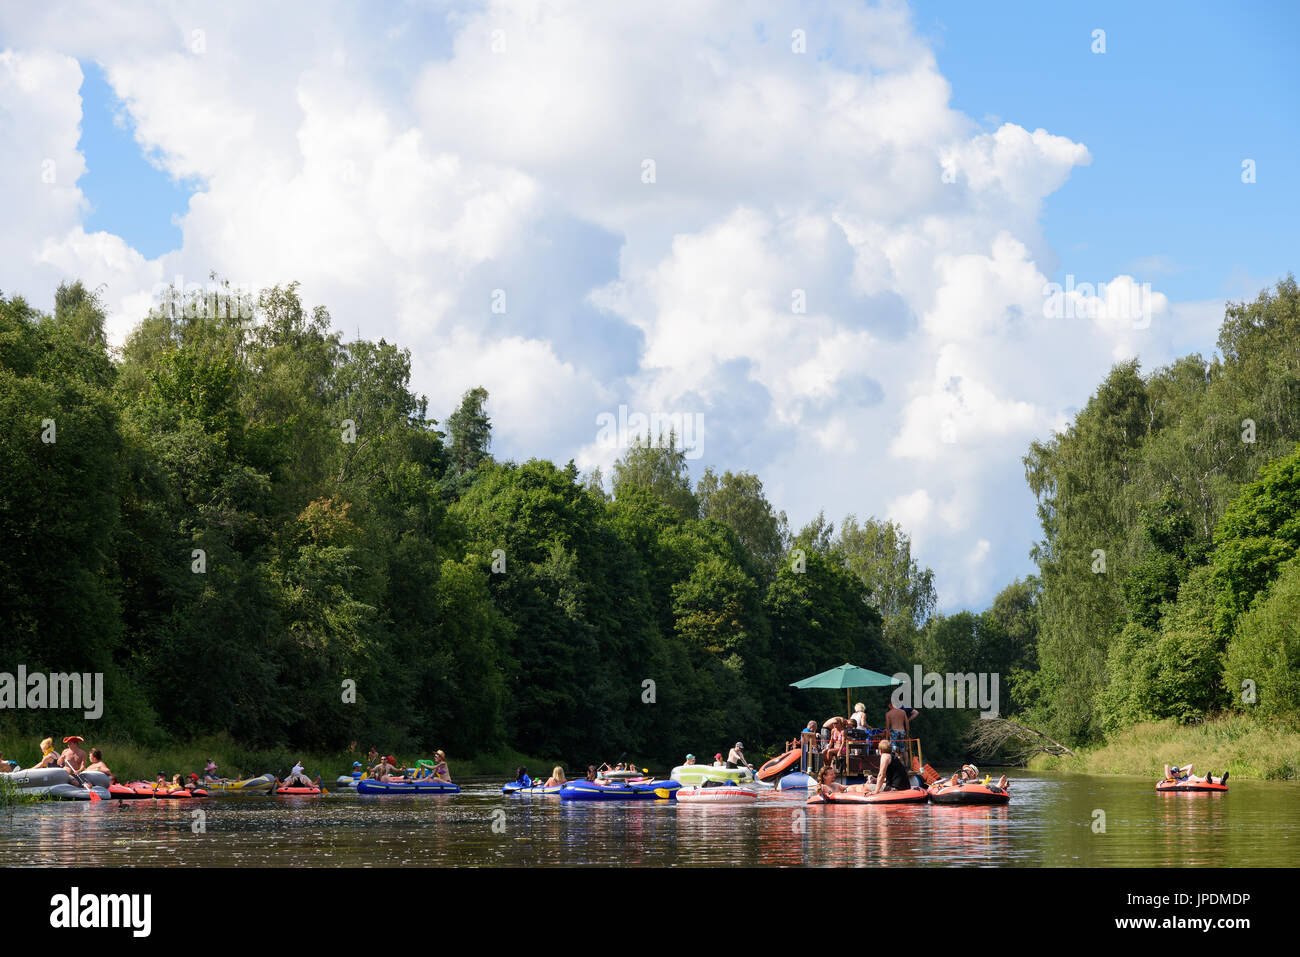 Helsinki, Finland – July 30, 2016: Unidentified people drafting and tubing in Vantaanjoki river on rubber dinghies, rafts and other inflatable floatin - Stock Image